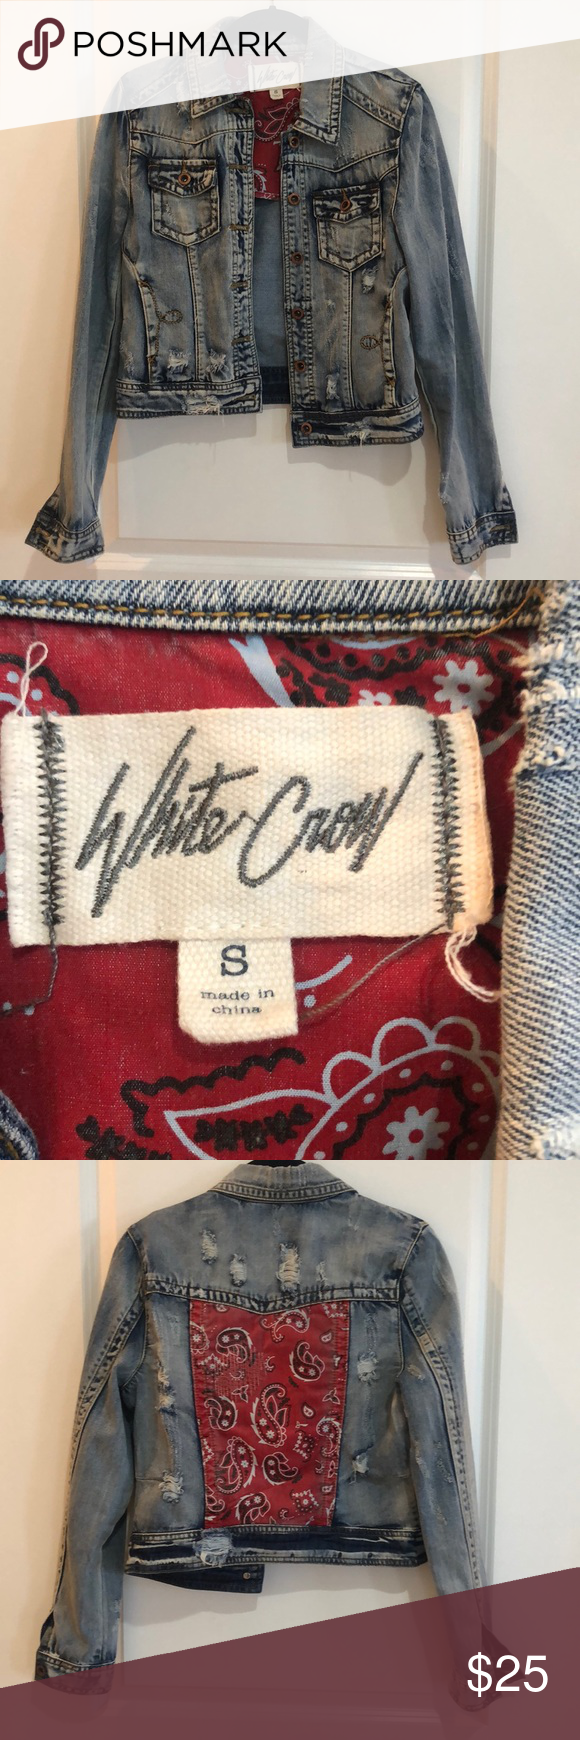 White Crow Jean Jacket With Red Bandana Detail Red Bandana Jean Jacket Jackets [ 1740 x 580 Pixel ]